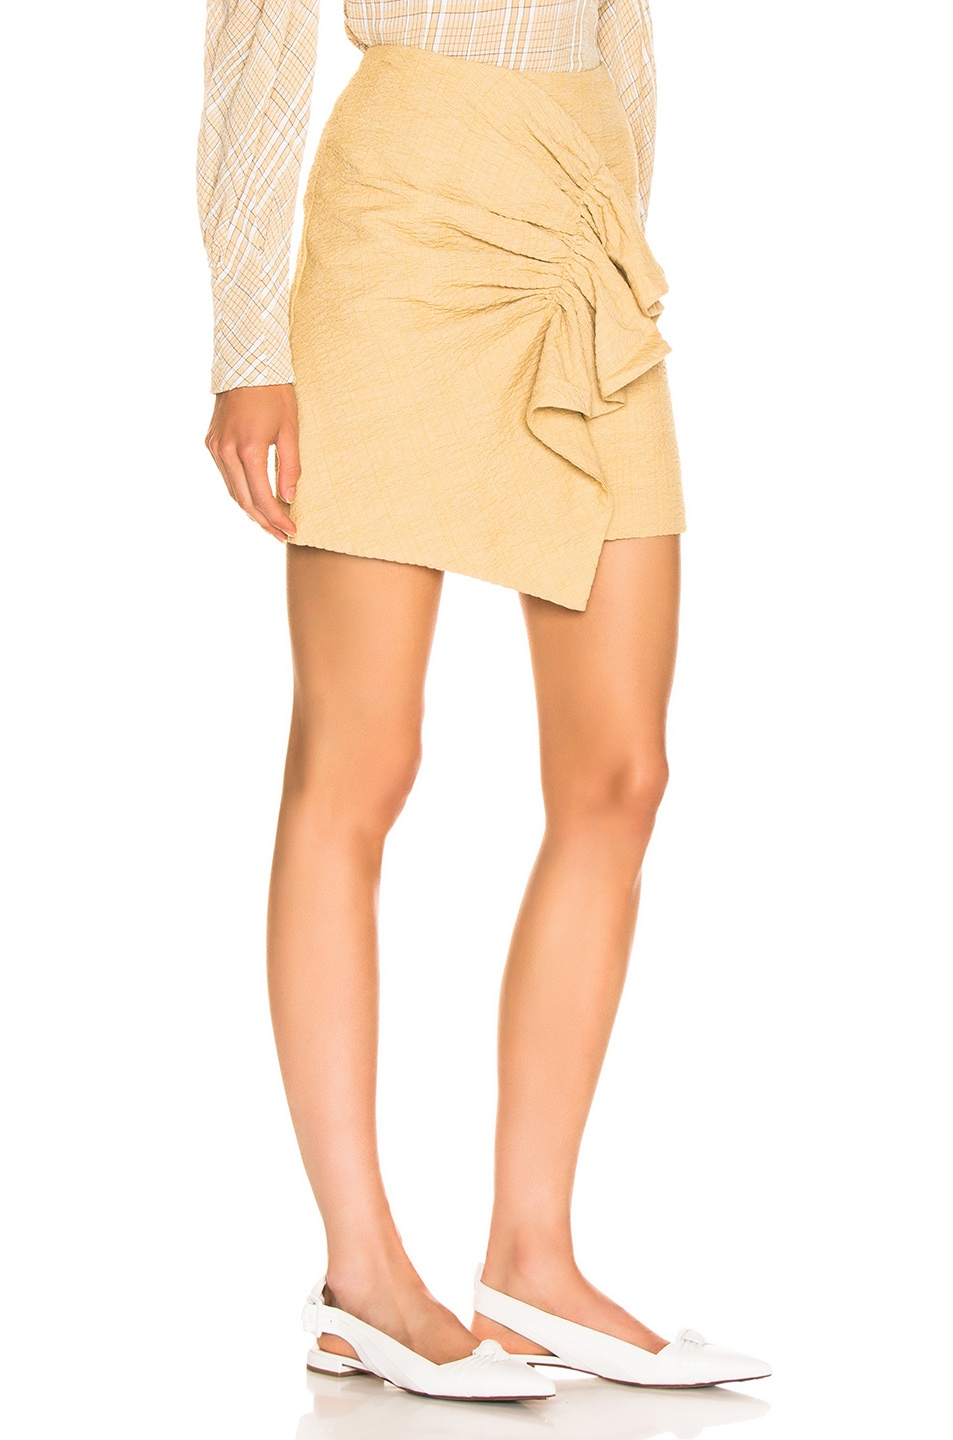 Image 2 of Atoir Golden Years Skirt in Golden Mist